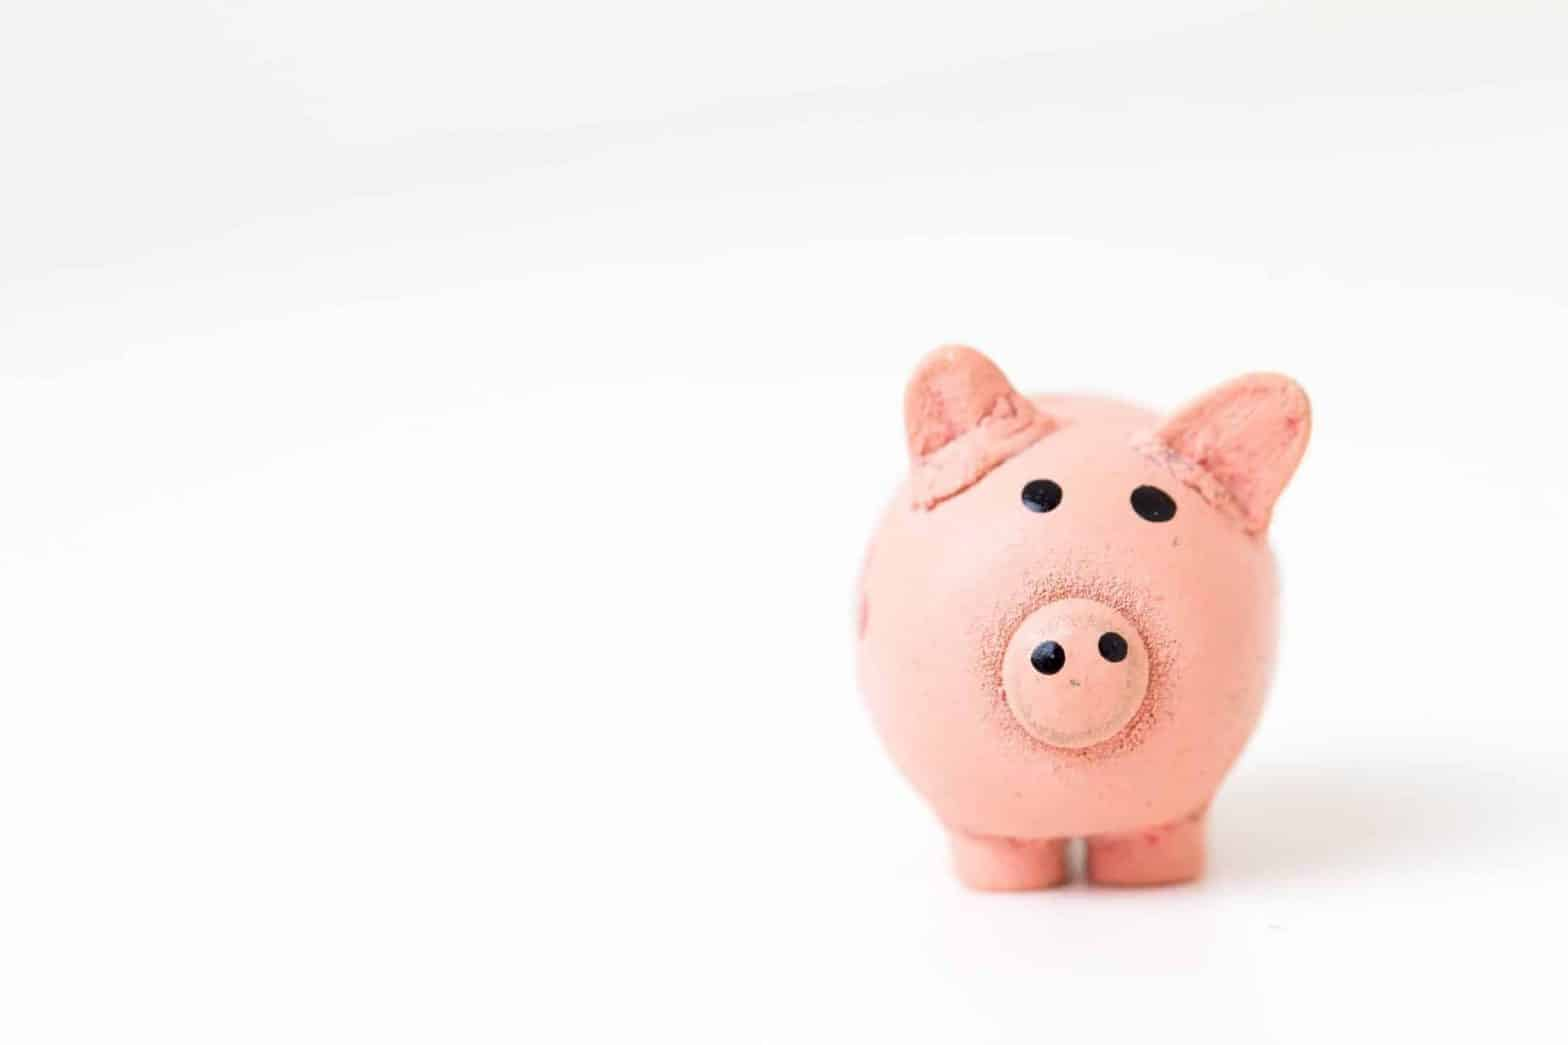 How To Finance Your Small Business - Our Tips On Scaling Up